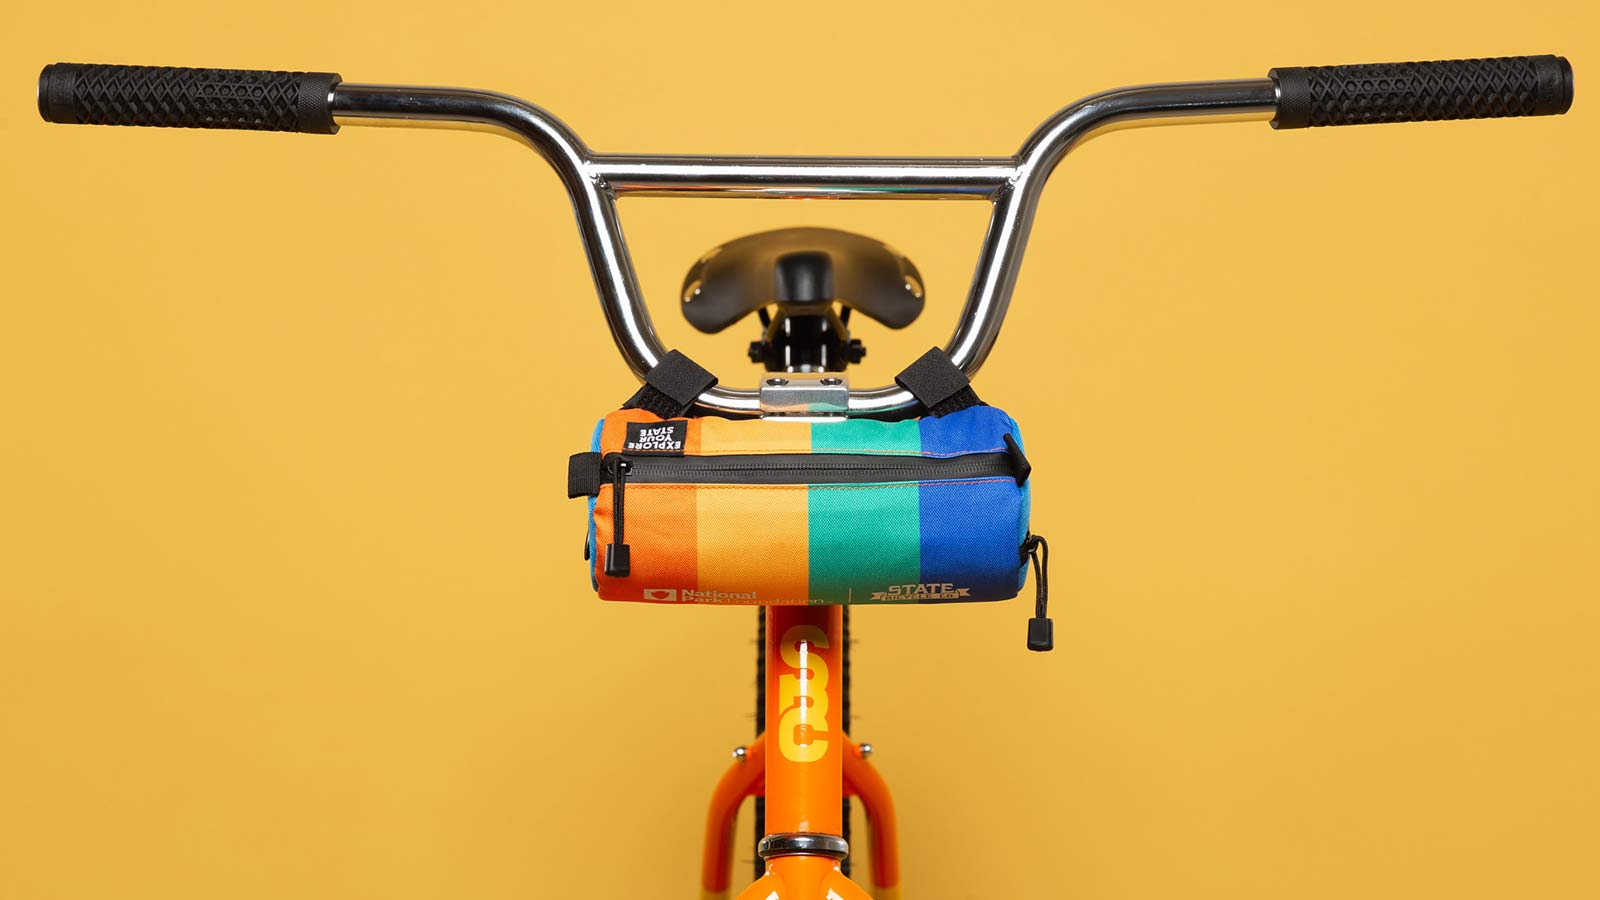 State X NPF collection, State Bicycle x National Park Foundation limited-edition bikes & gear,Klunker